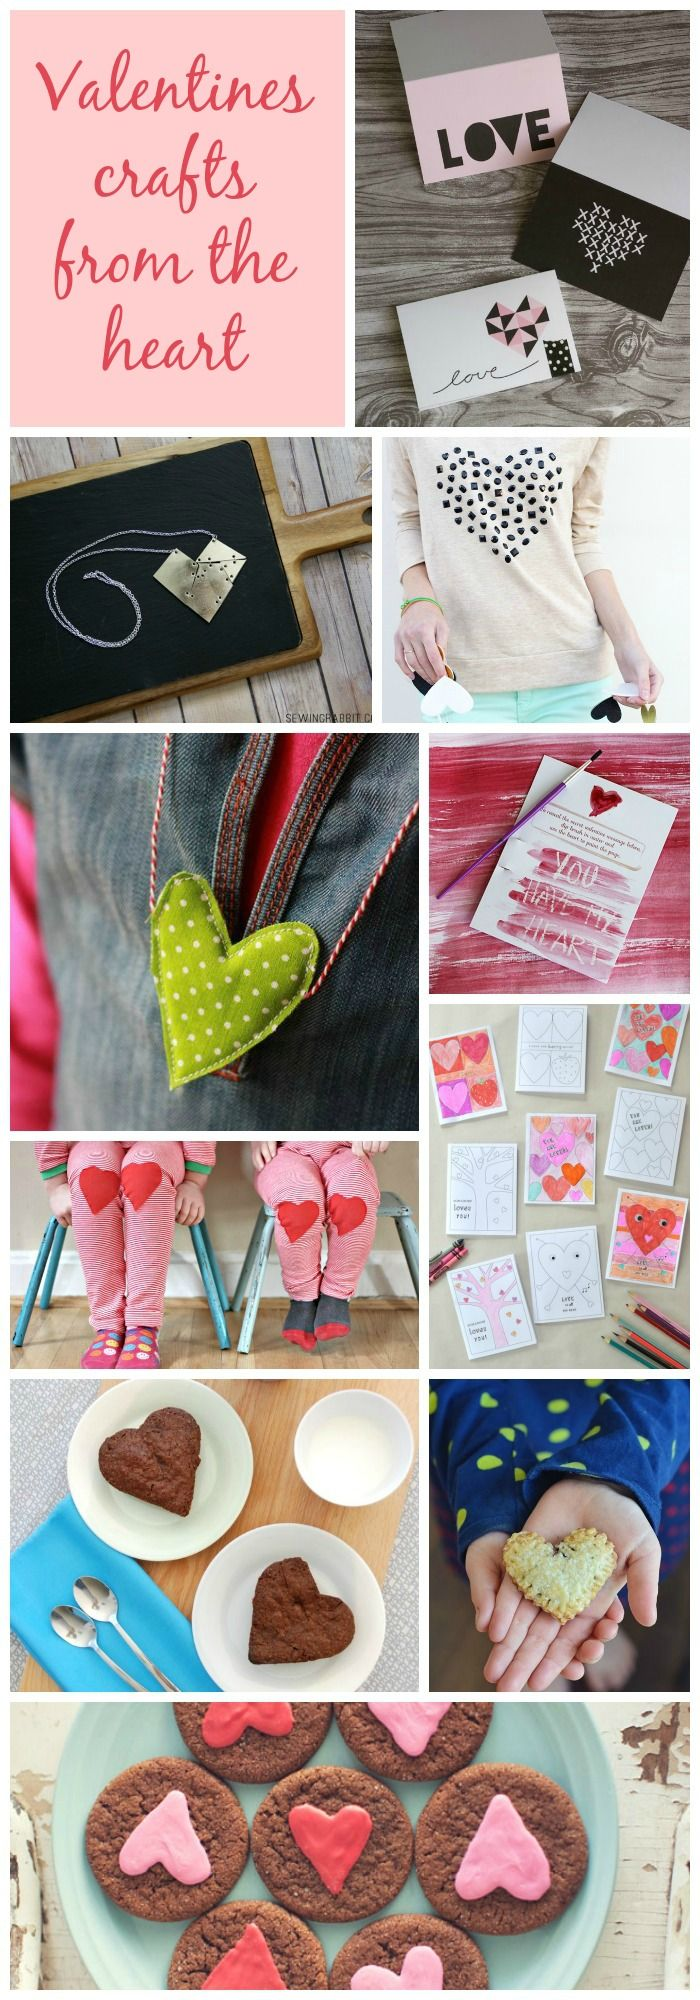 best v day images on pinterest hearts my heart and valantine day